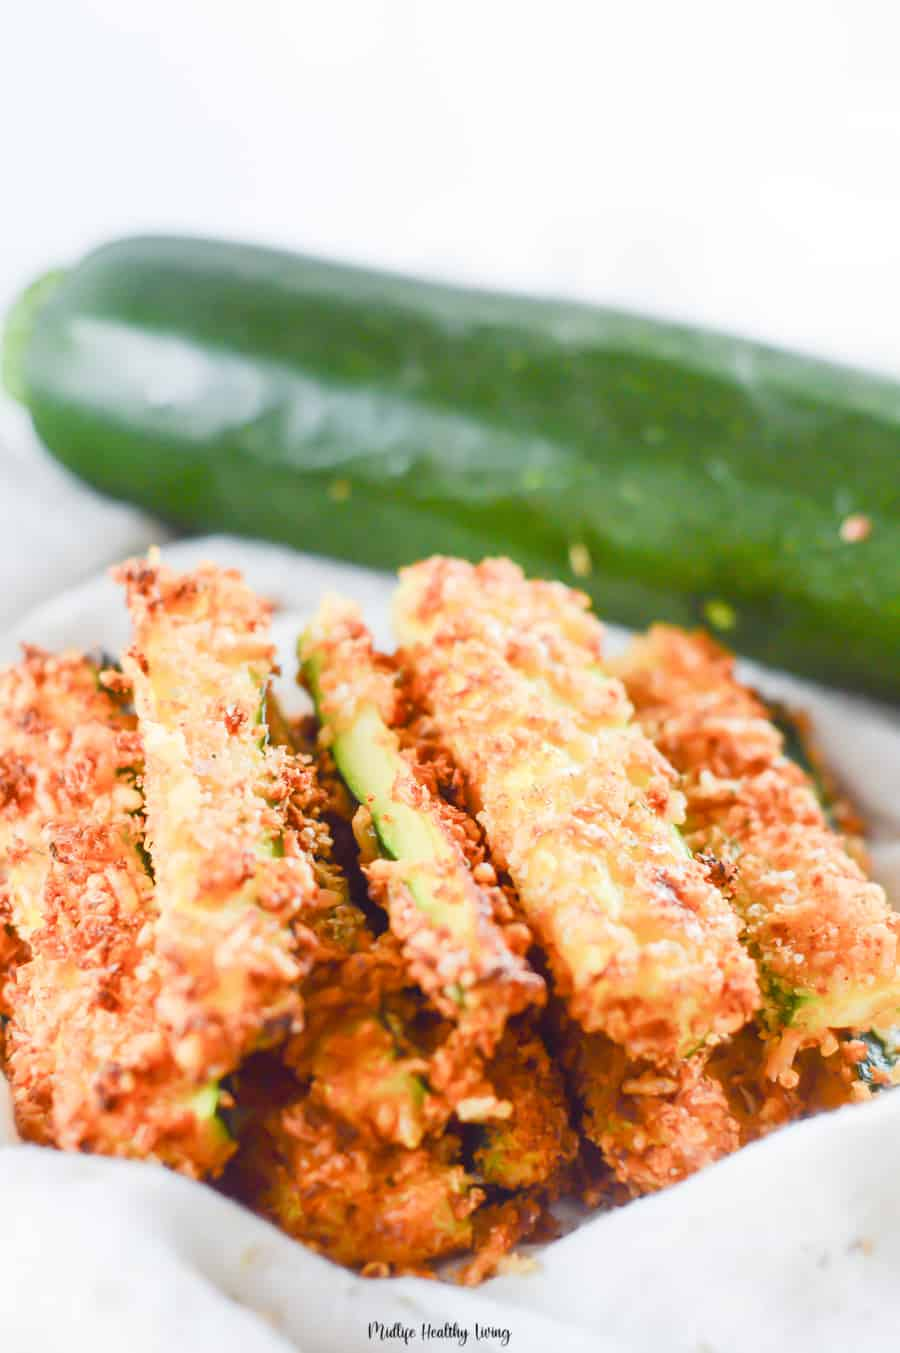 A final look at the finished zucchini fries recipe!